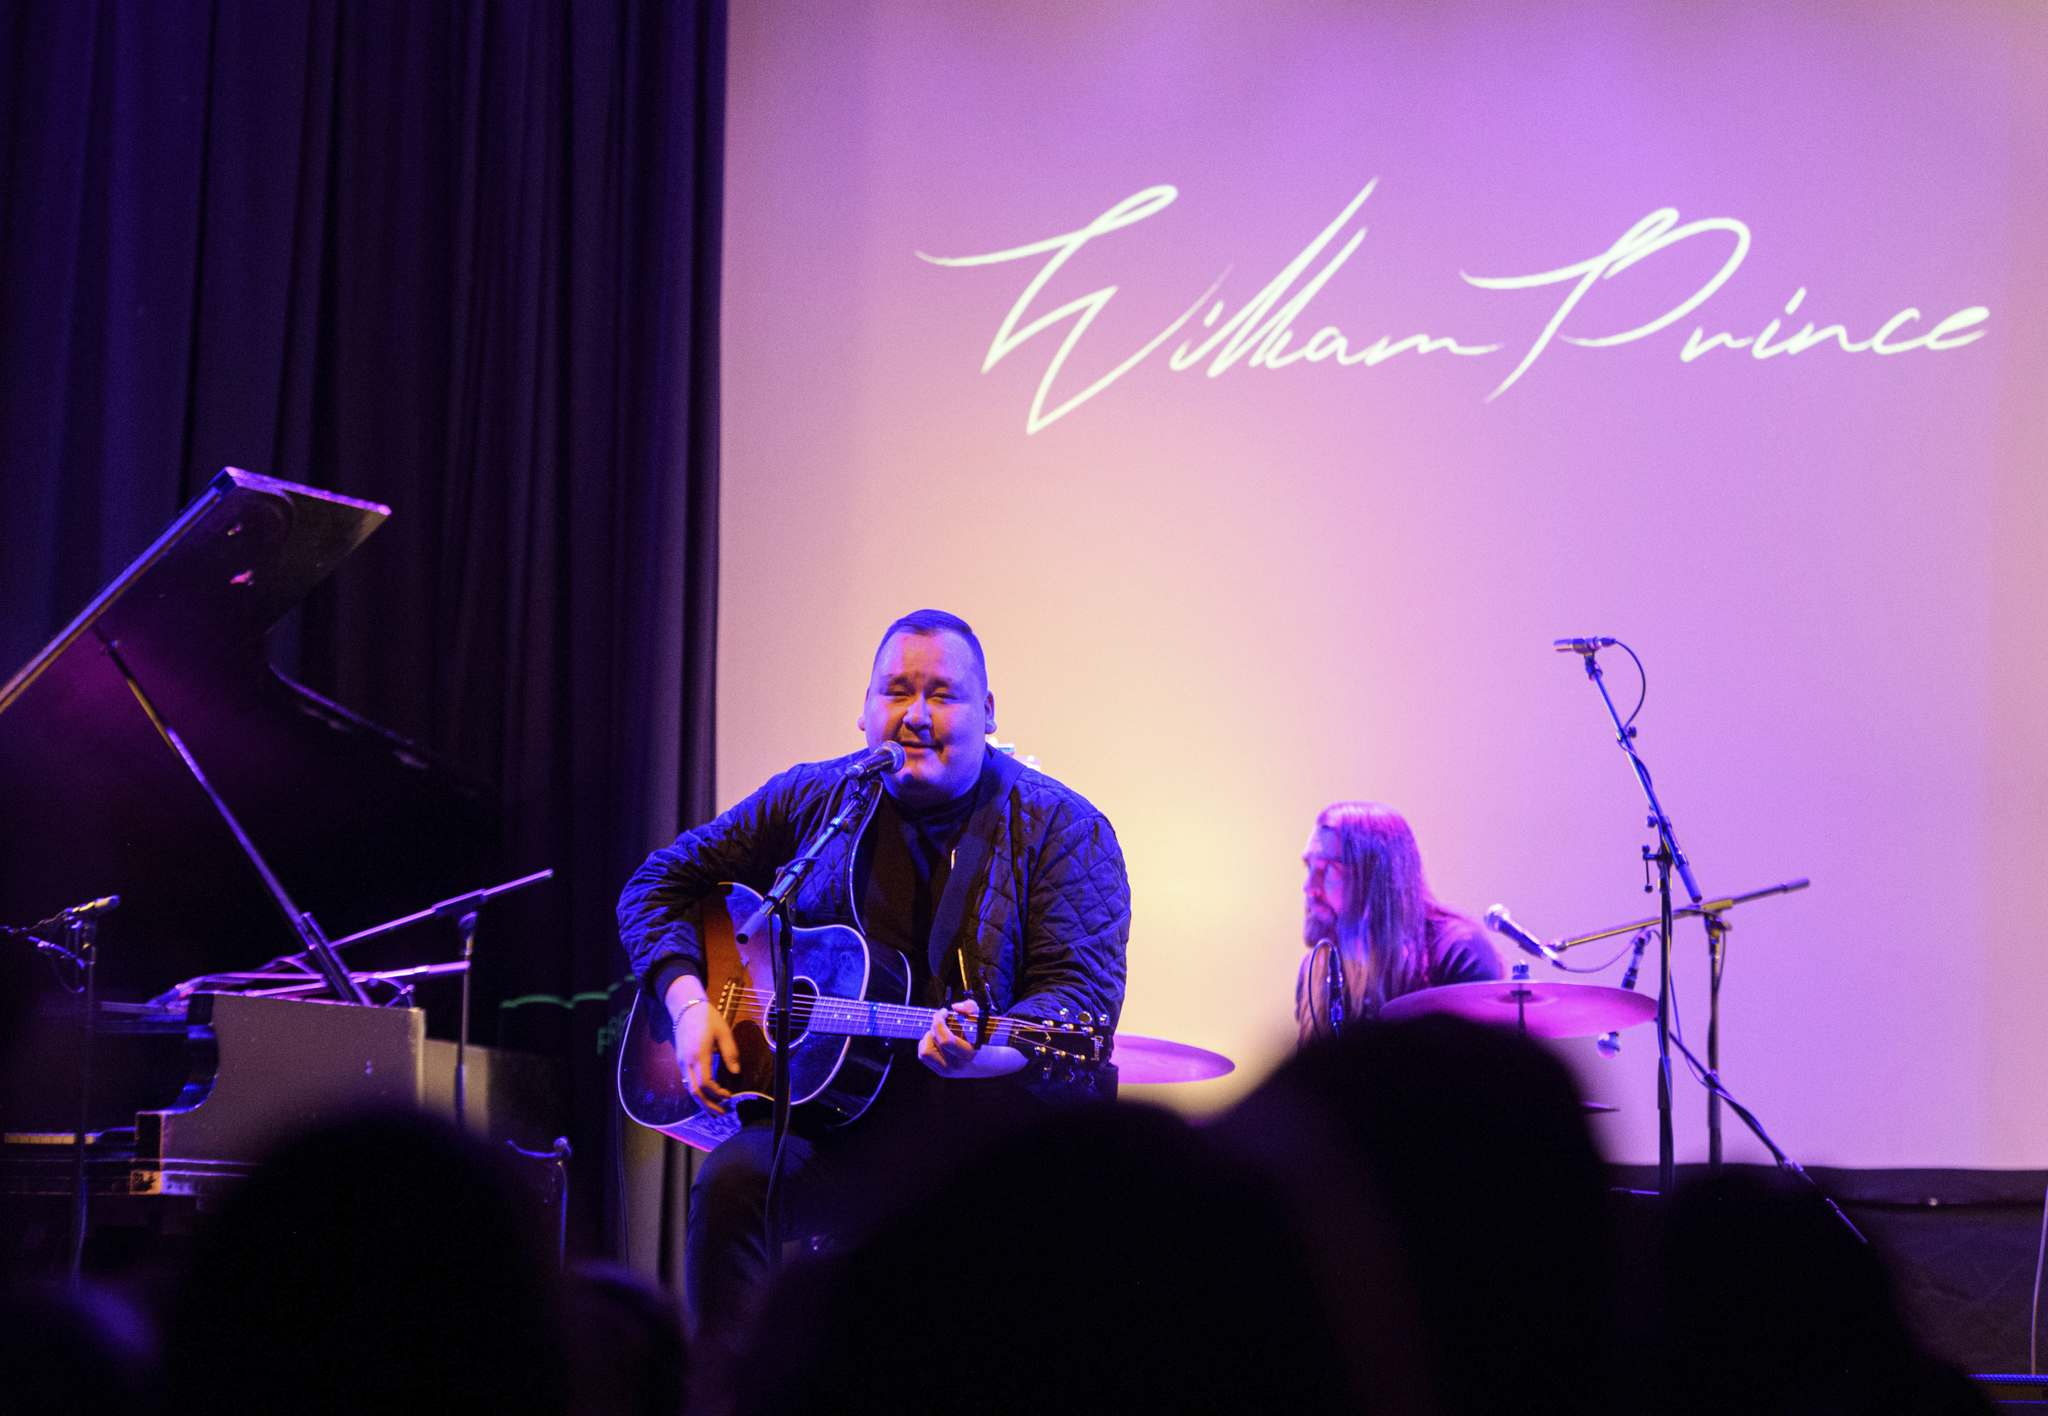 MIKE SUDOMA / WINNIPEG FREE PRESS</p><p>Winnipeg musician William Prince, performs for fans during his third consecutive sold out show at the West End Cultural Centre Sunday afternoon.</p>